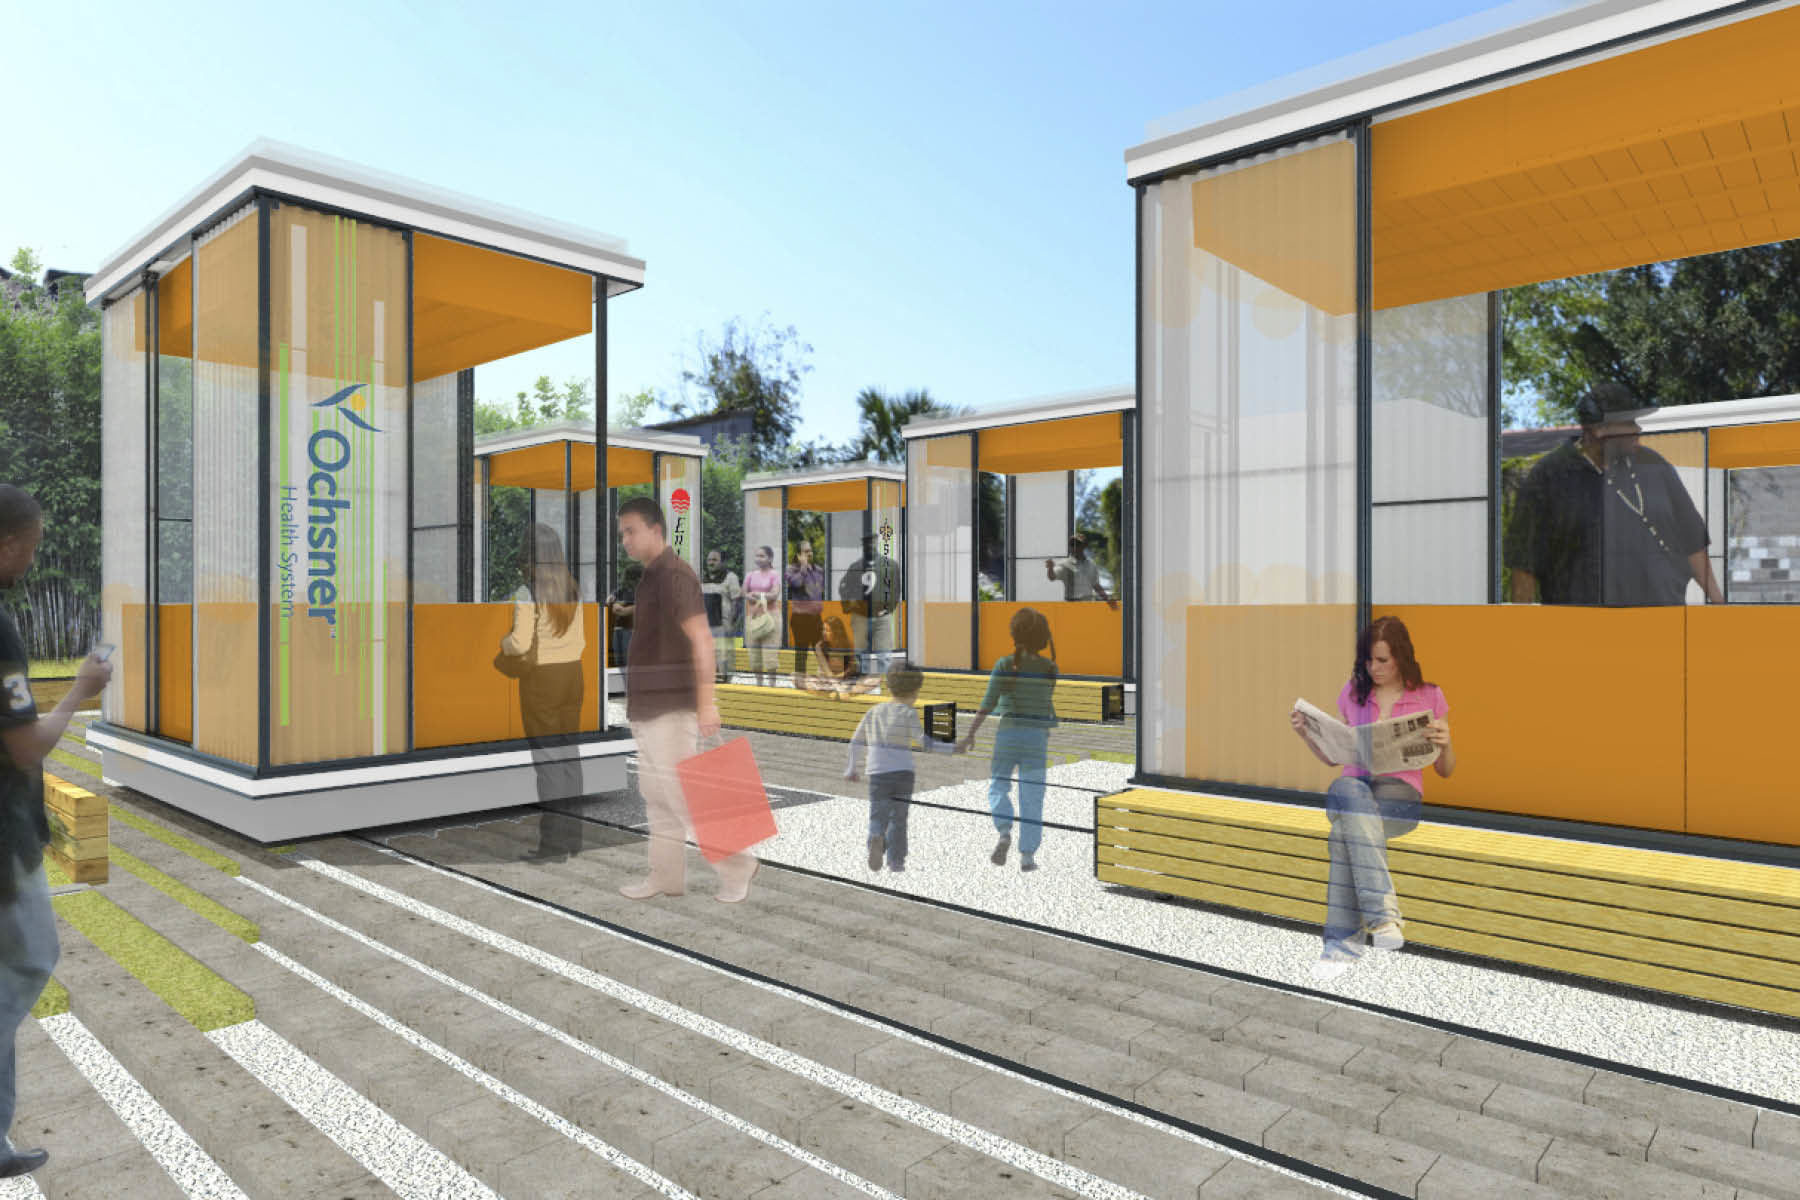 Digital perspective rendering of several small modern style vendor stalls in an open-air market